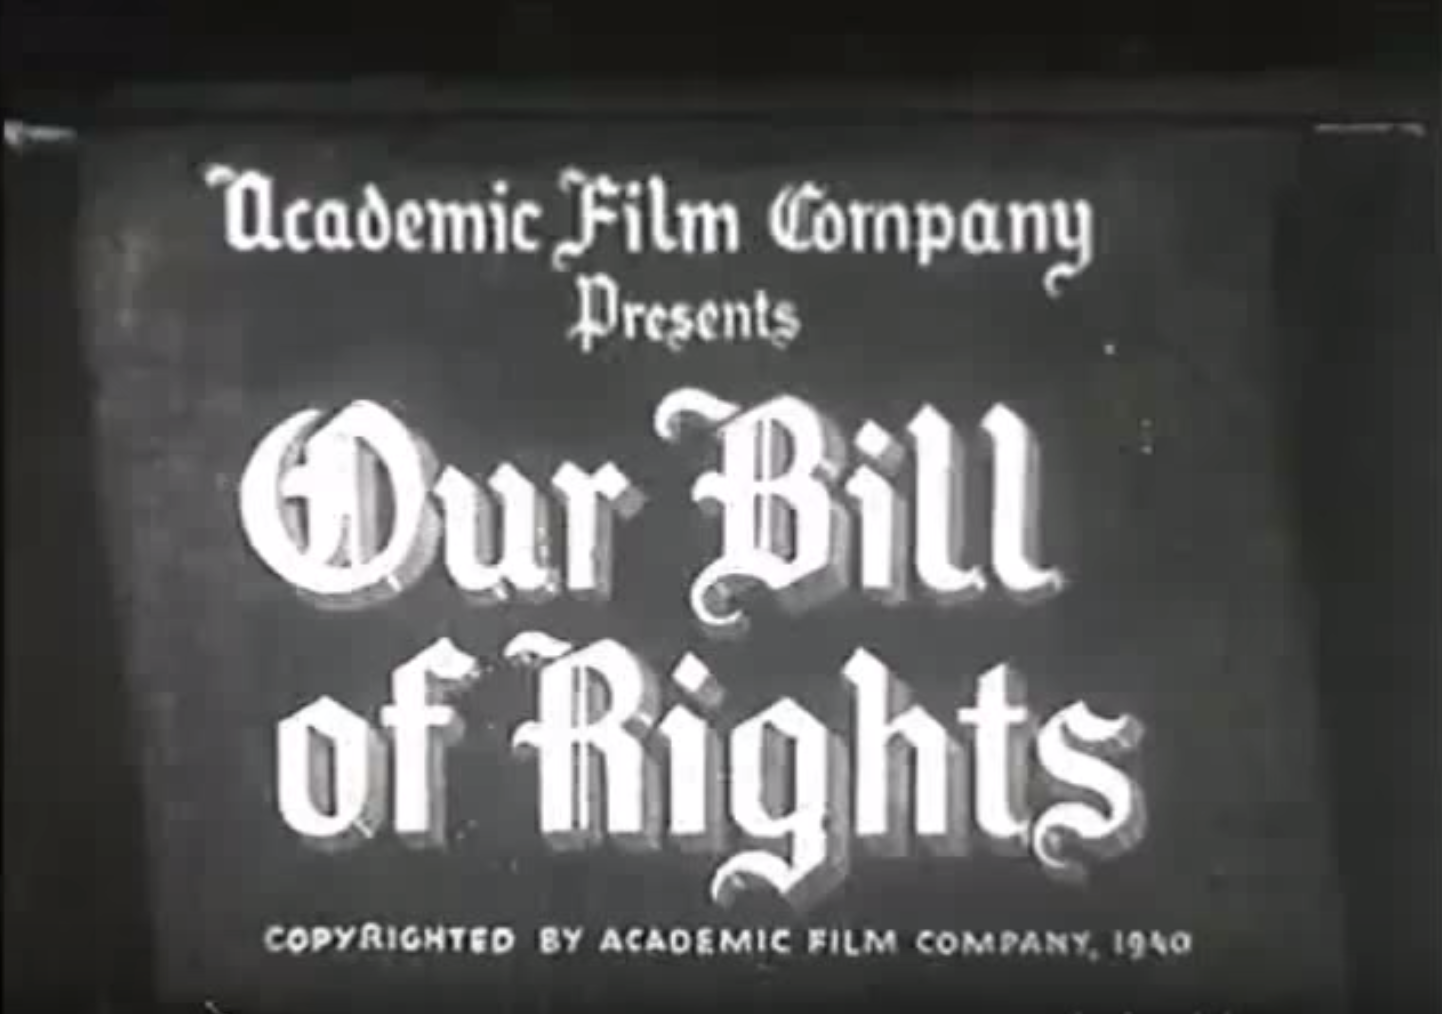 Our Bill of Rights - 1940